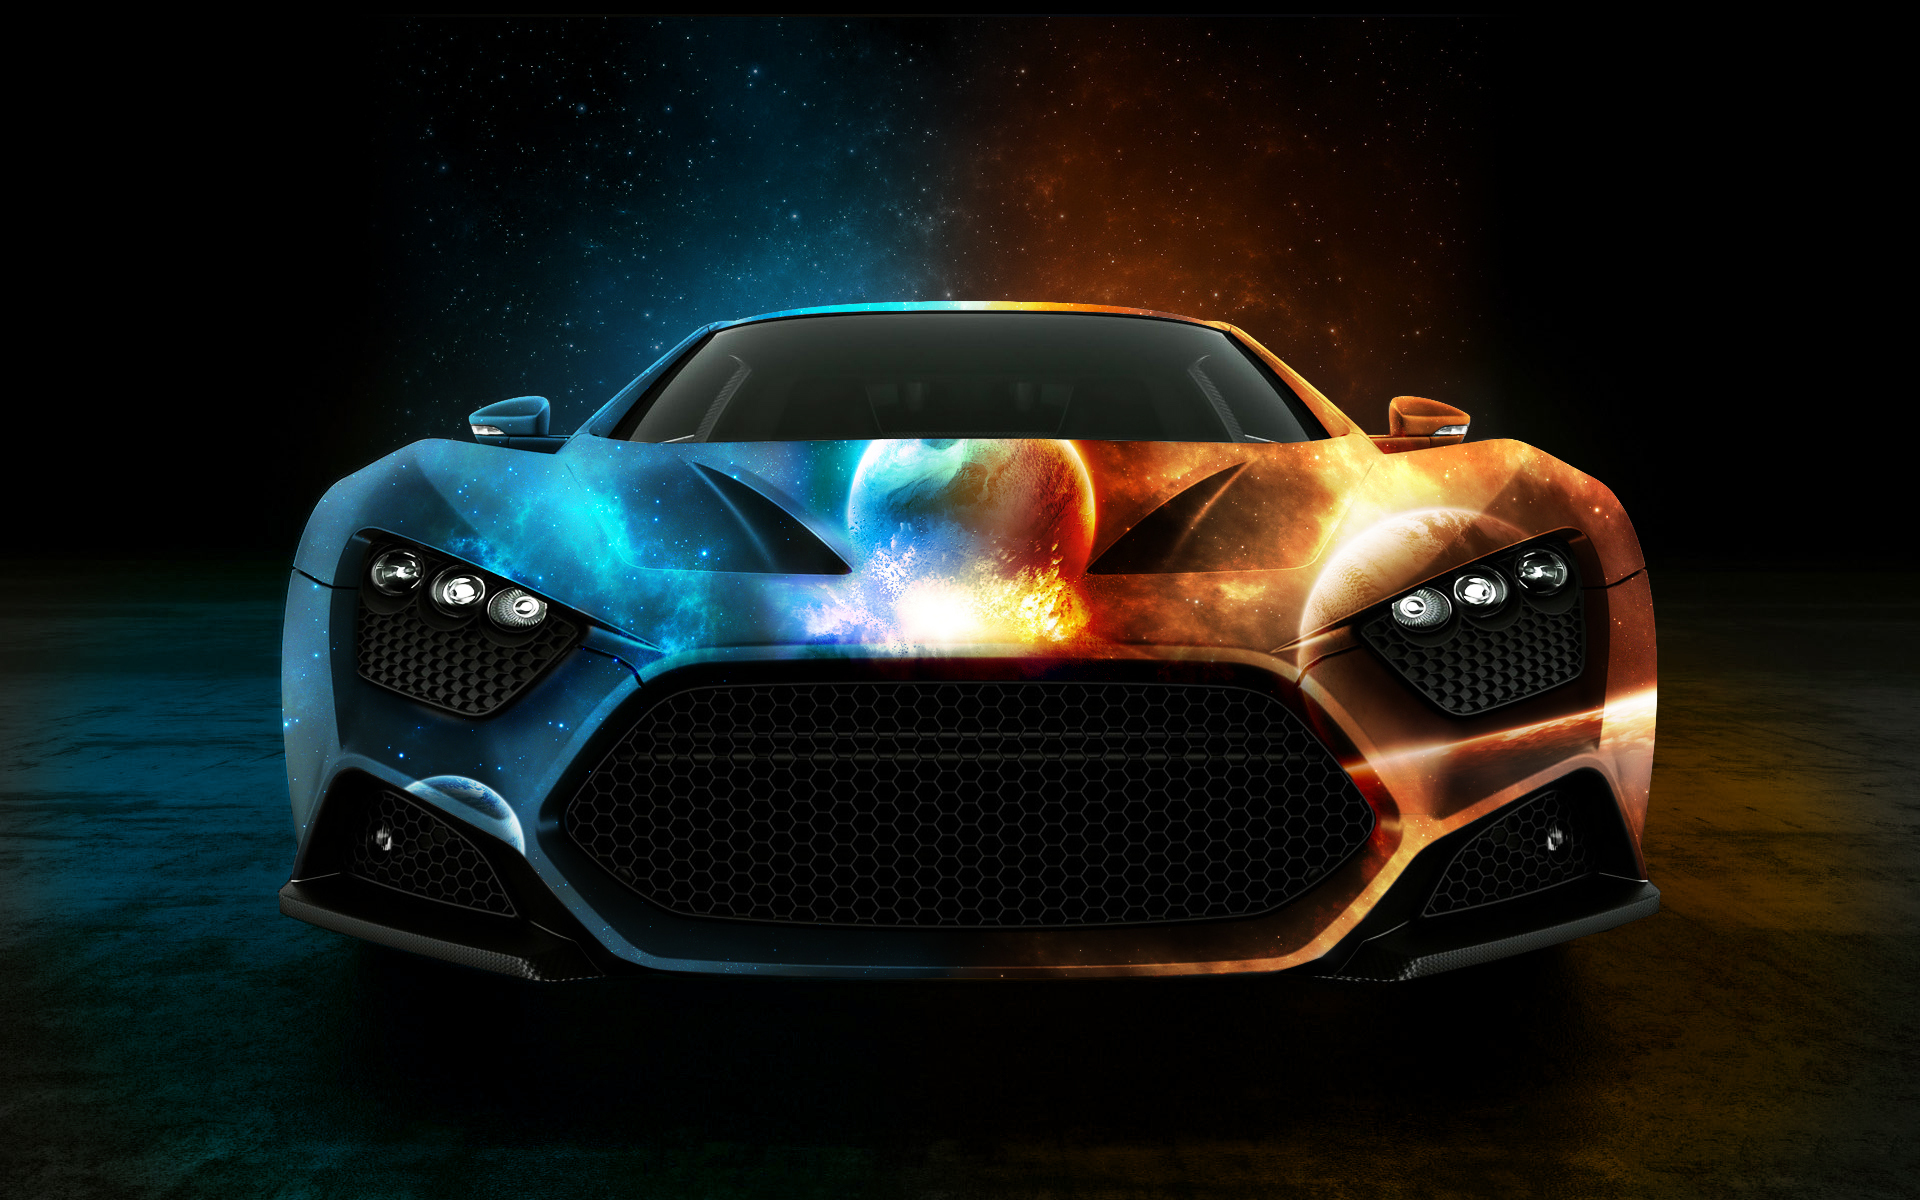 Awesome Car Wallpaper image   Le Fancy Wallpapers   Mod DB 1920x1200